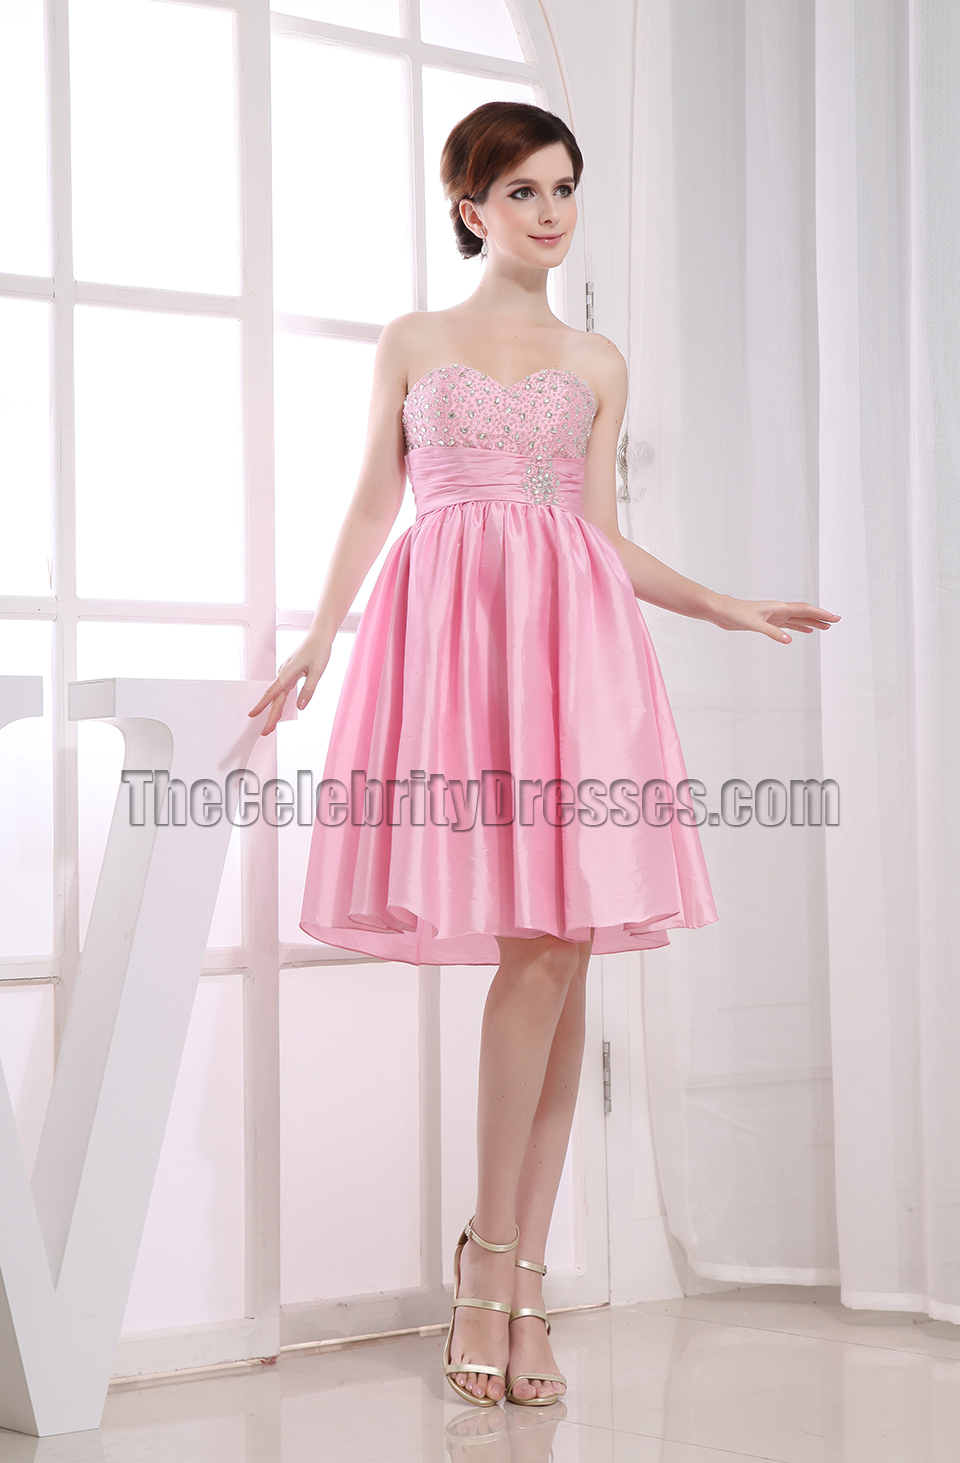 Cute Pink A-Line Sweetheart Party Dress Homecoming Dresses ...